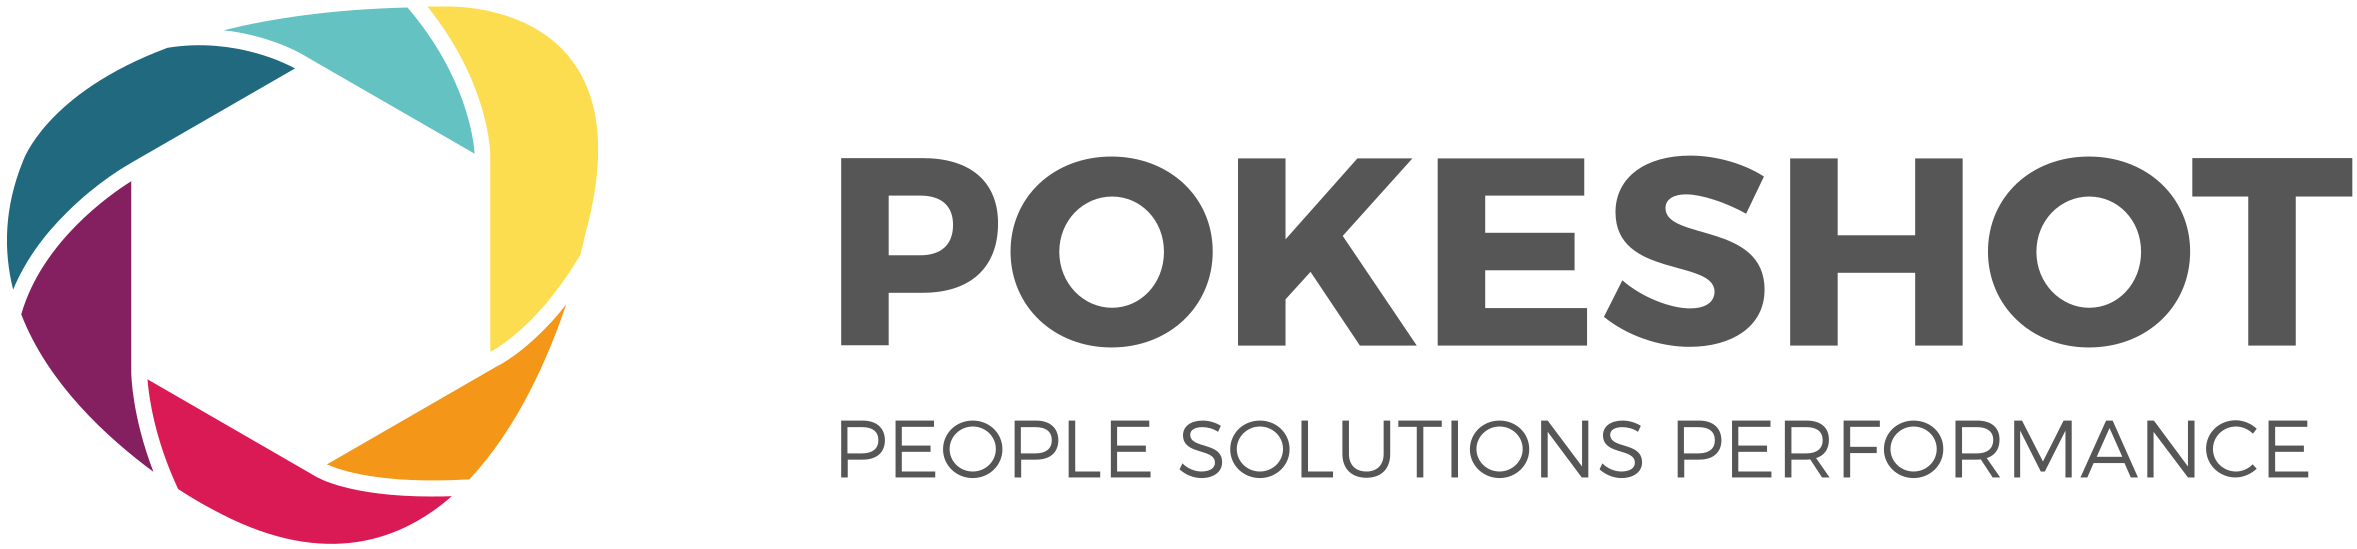 Pokeshot GmbH | People Solutions Performance